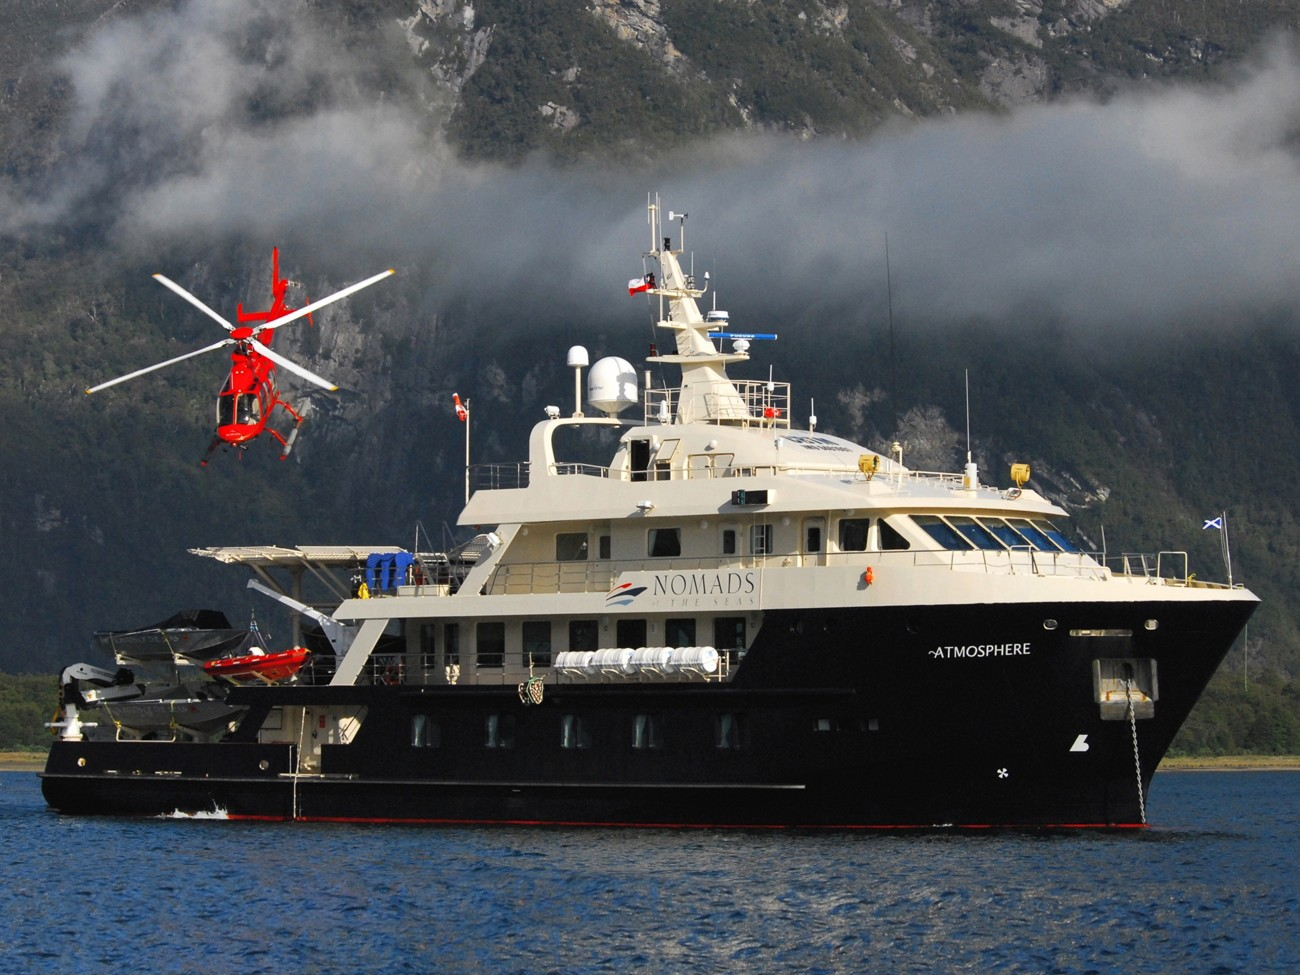 Overview Including Chopper Aboard Yacht ATMOSPHERE